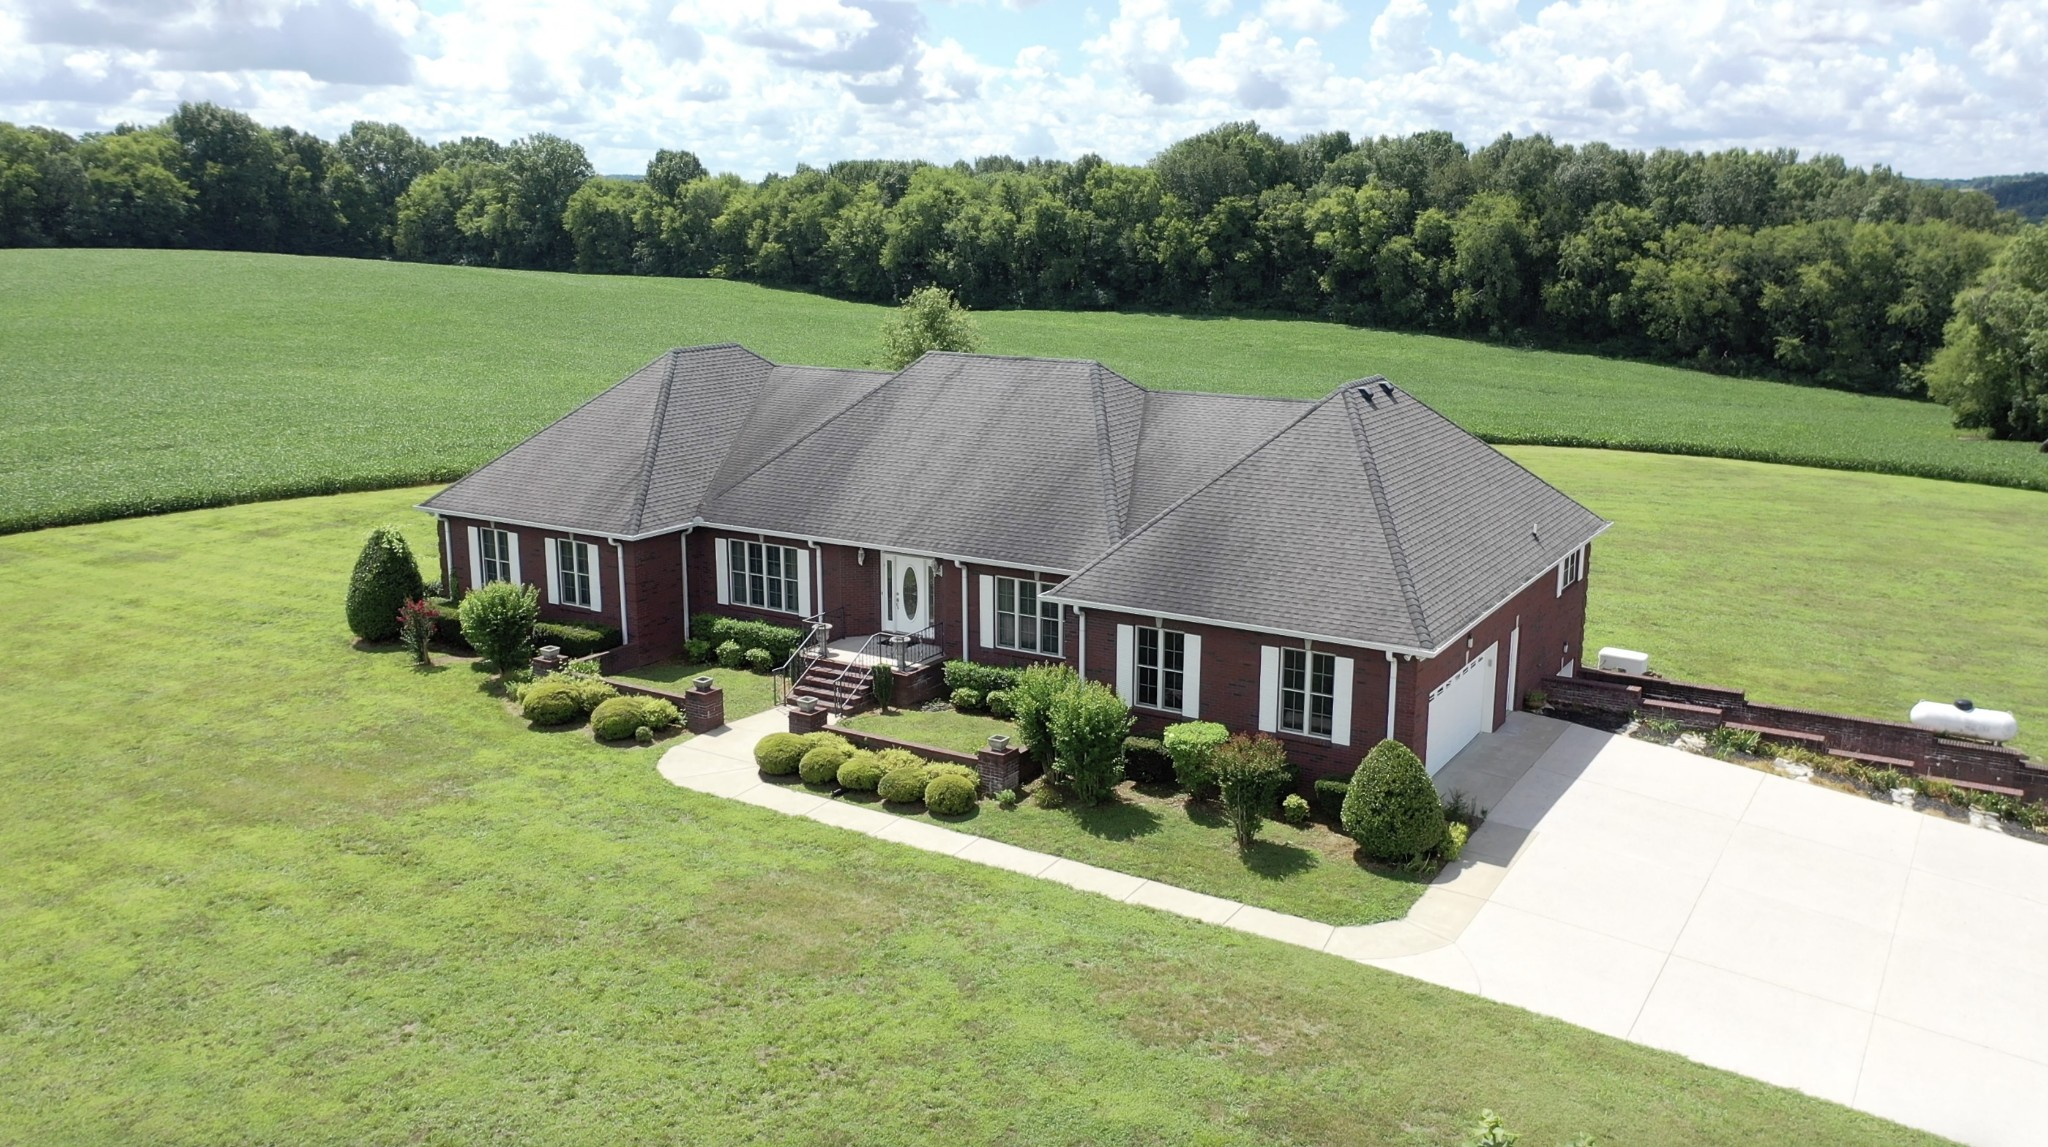 268 Clanton Ln Property Photo - Wartrace, TN real estate listing